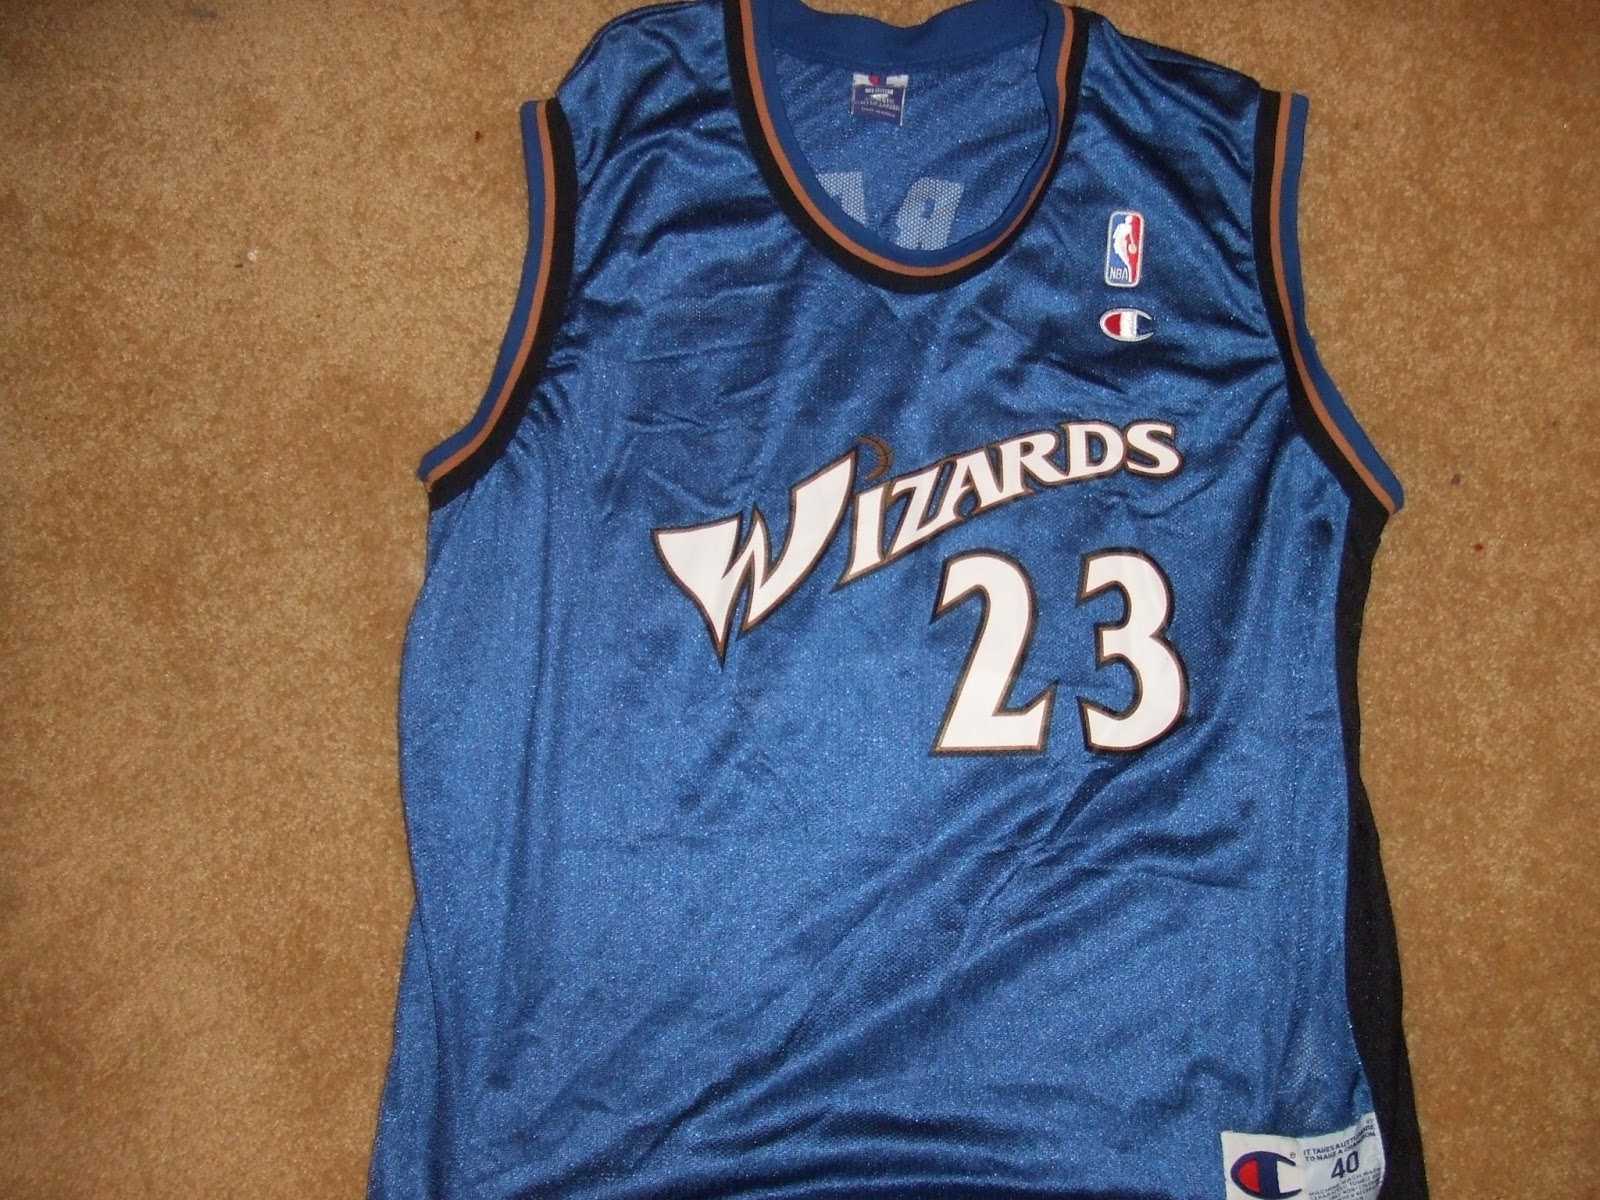 official photos 2805a b057f Vintage10916 Store: Vintage Michael Jordan Wizards Jersey